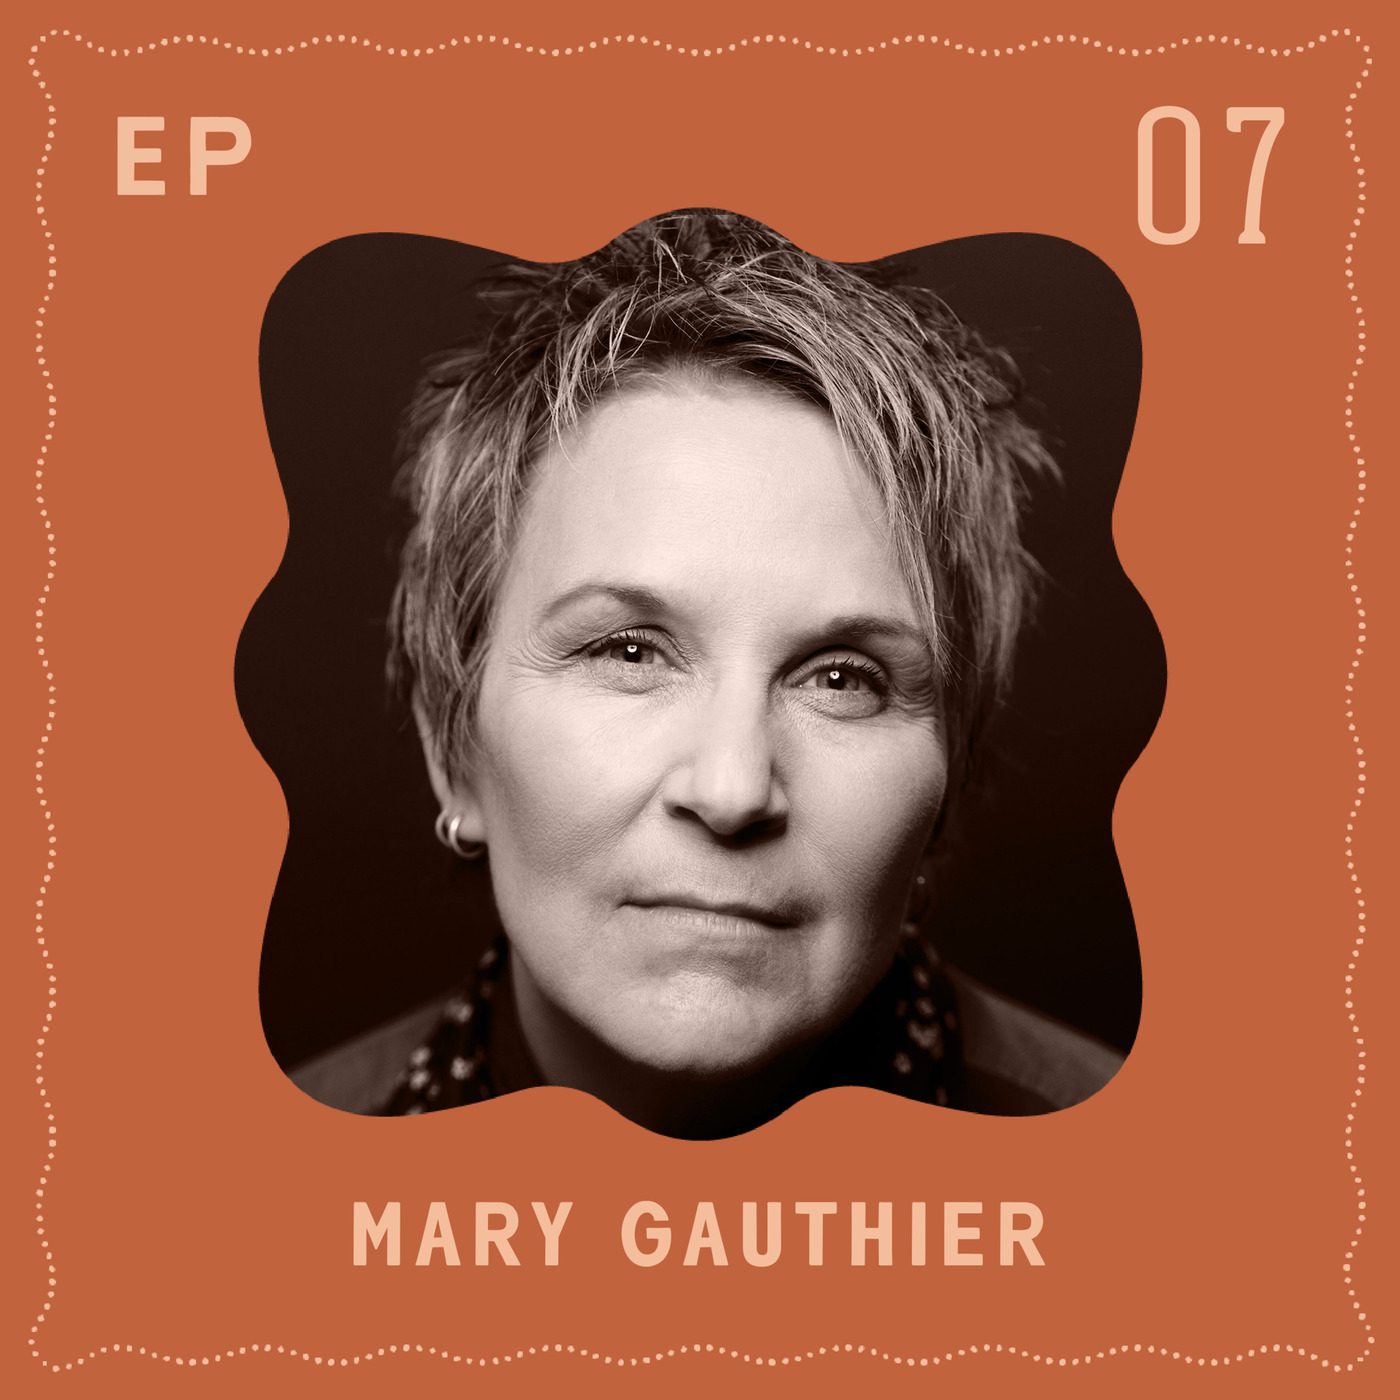 Harmonics with Beth Behrs : Mary Gauthier - Healing Through Songwriting